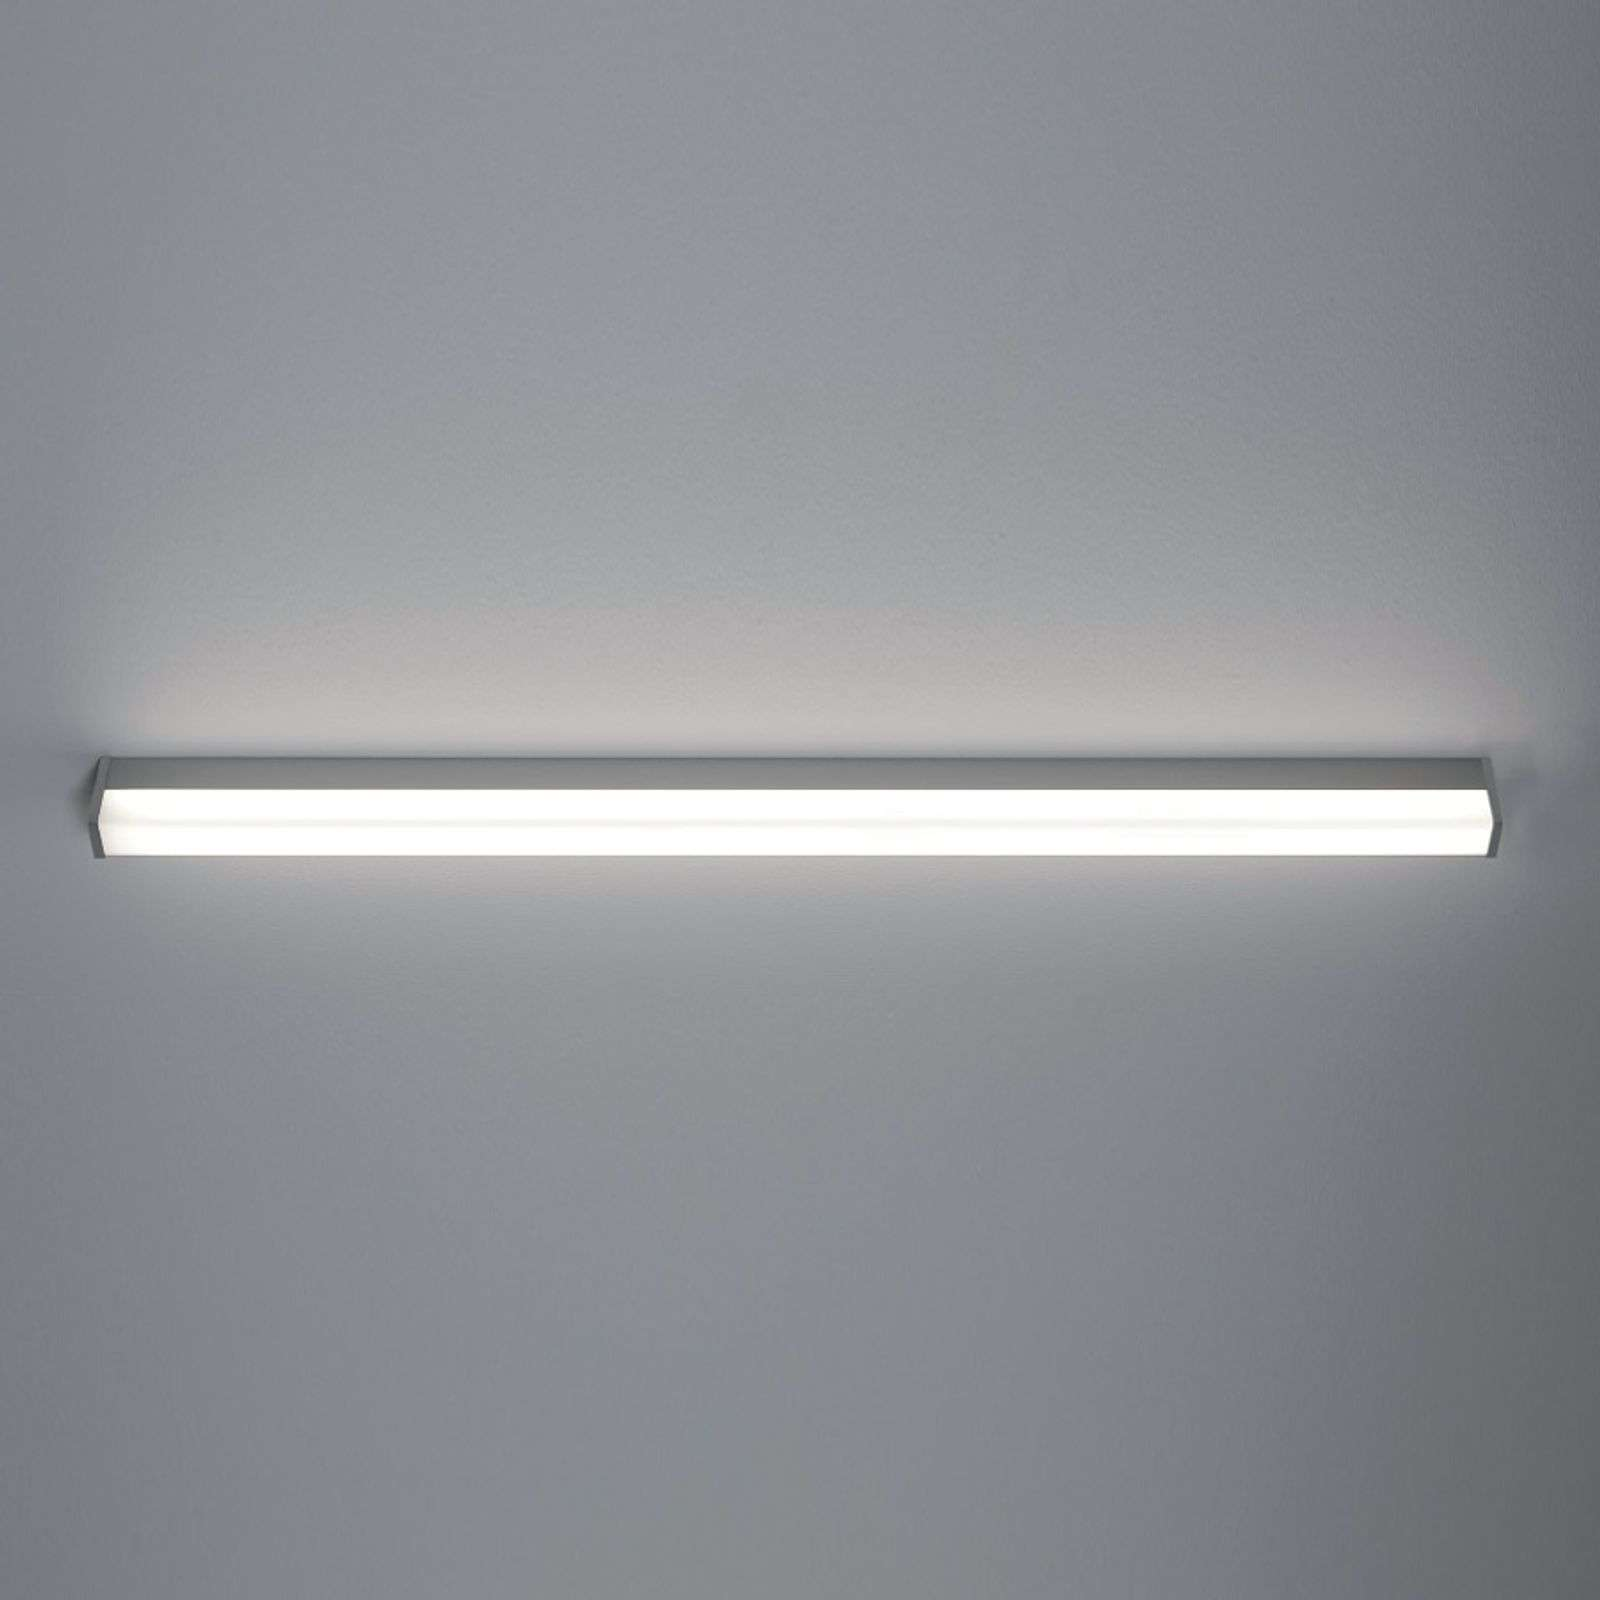 Applique LED PARI, 120 cm, aluminium